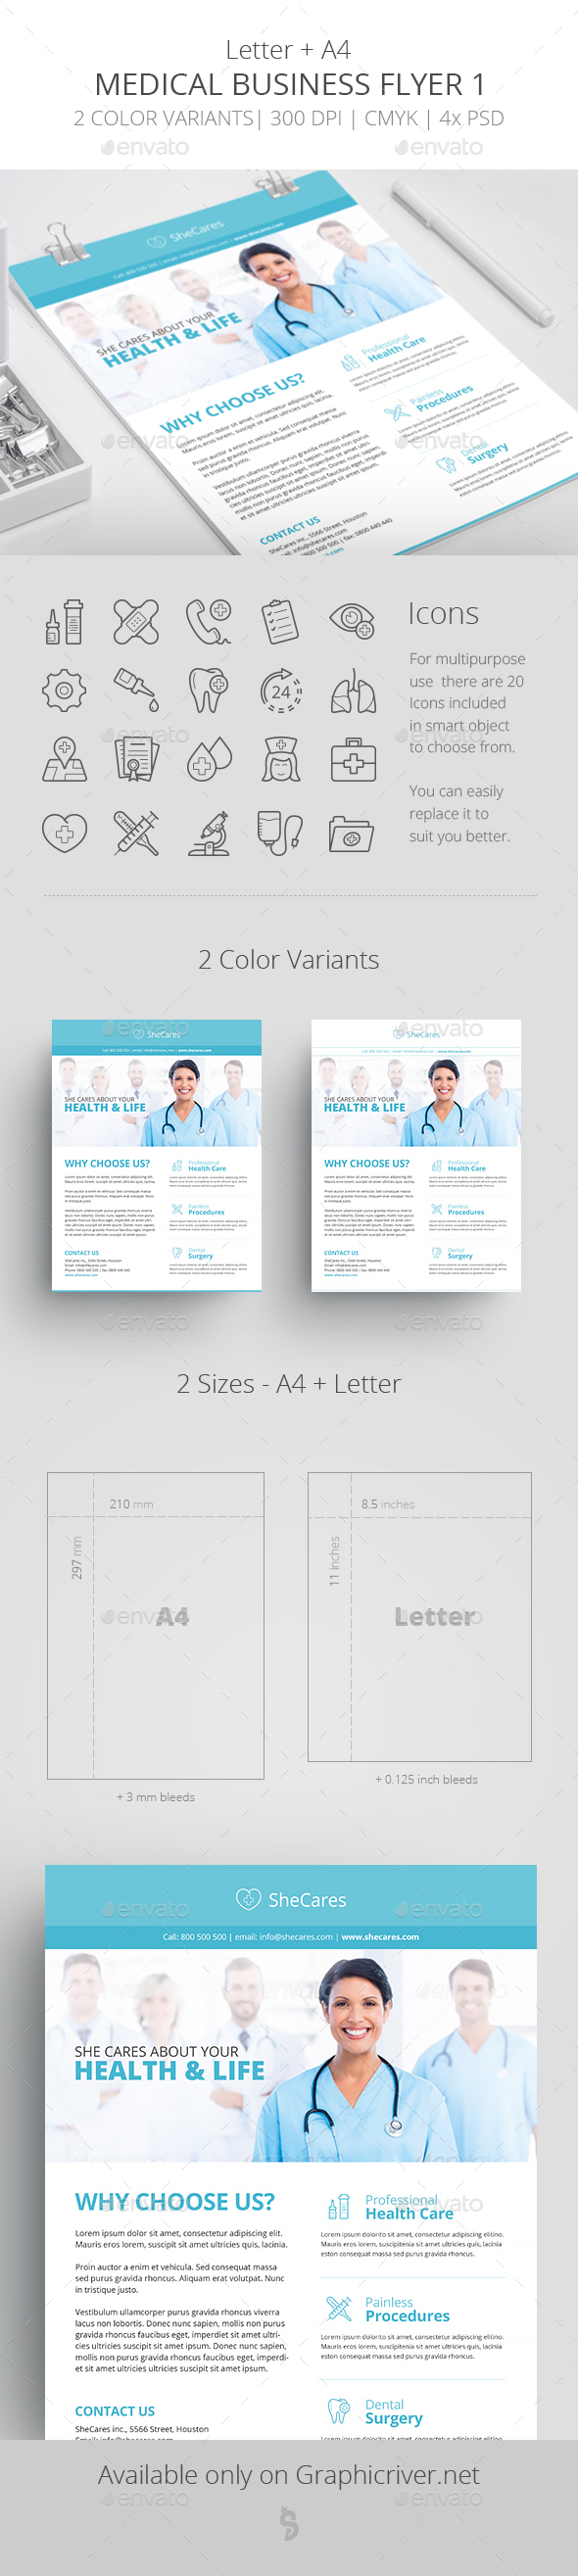 Medical Business Flyer Template 1 - Corporate Flyers